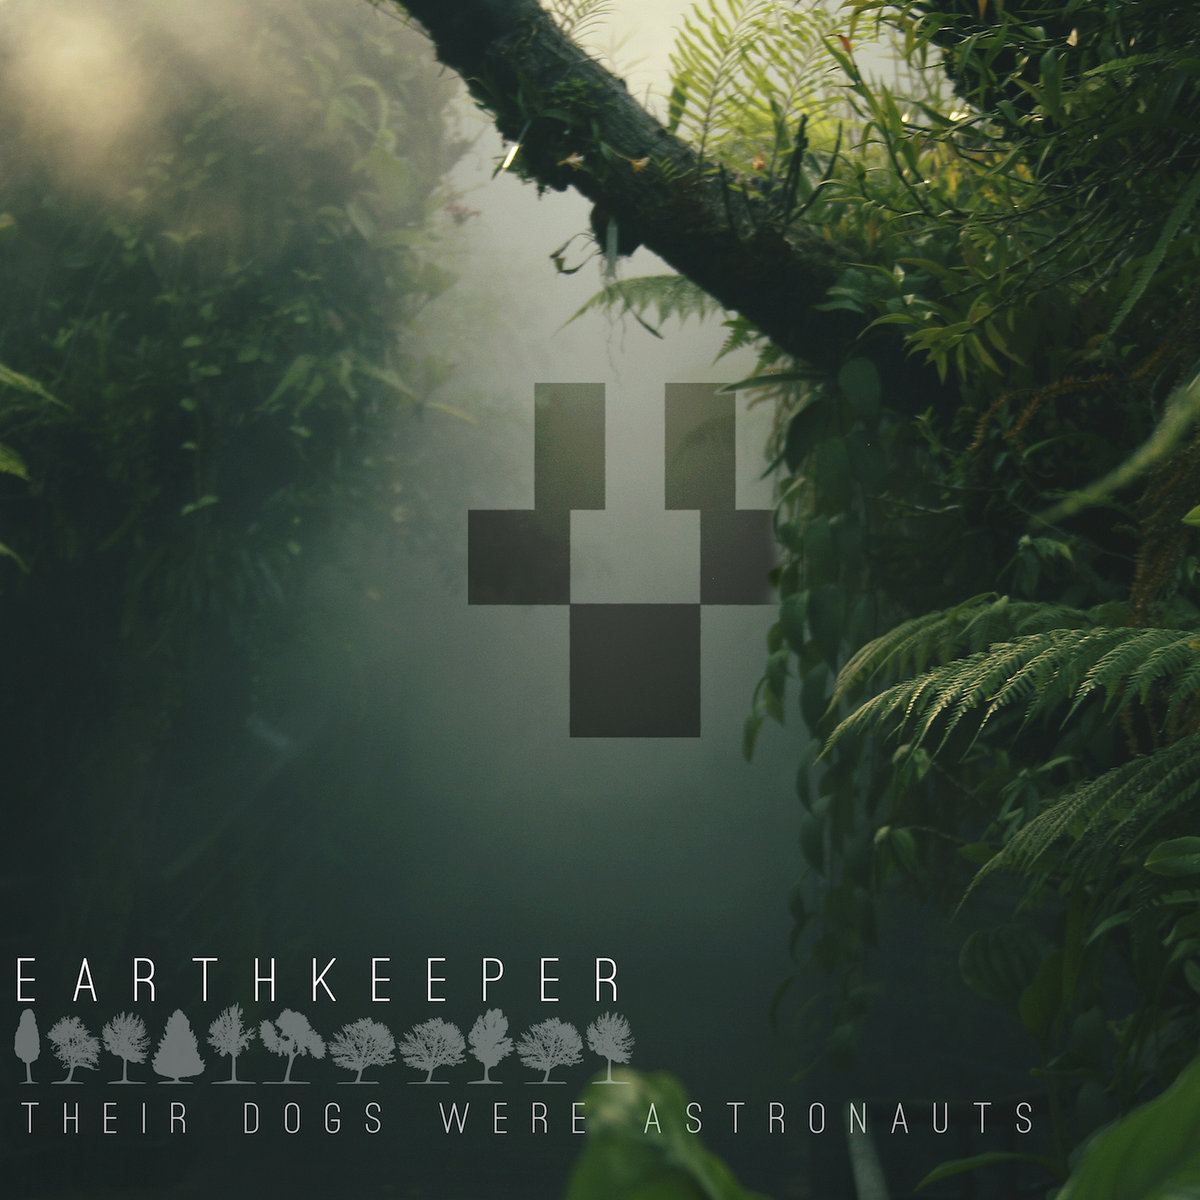 Their Dogs Were Astronauts - Earthkeeper @ 'Earthkeeper' album (instrumental metal, metal)